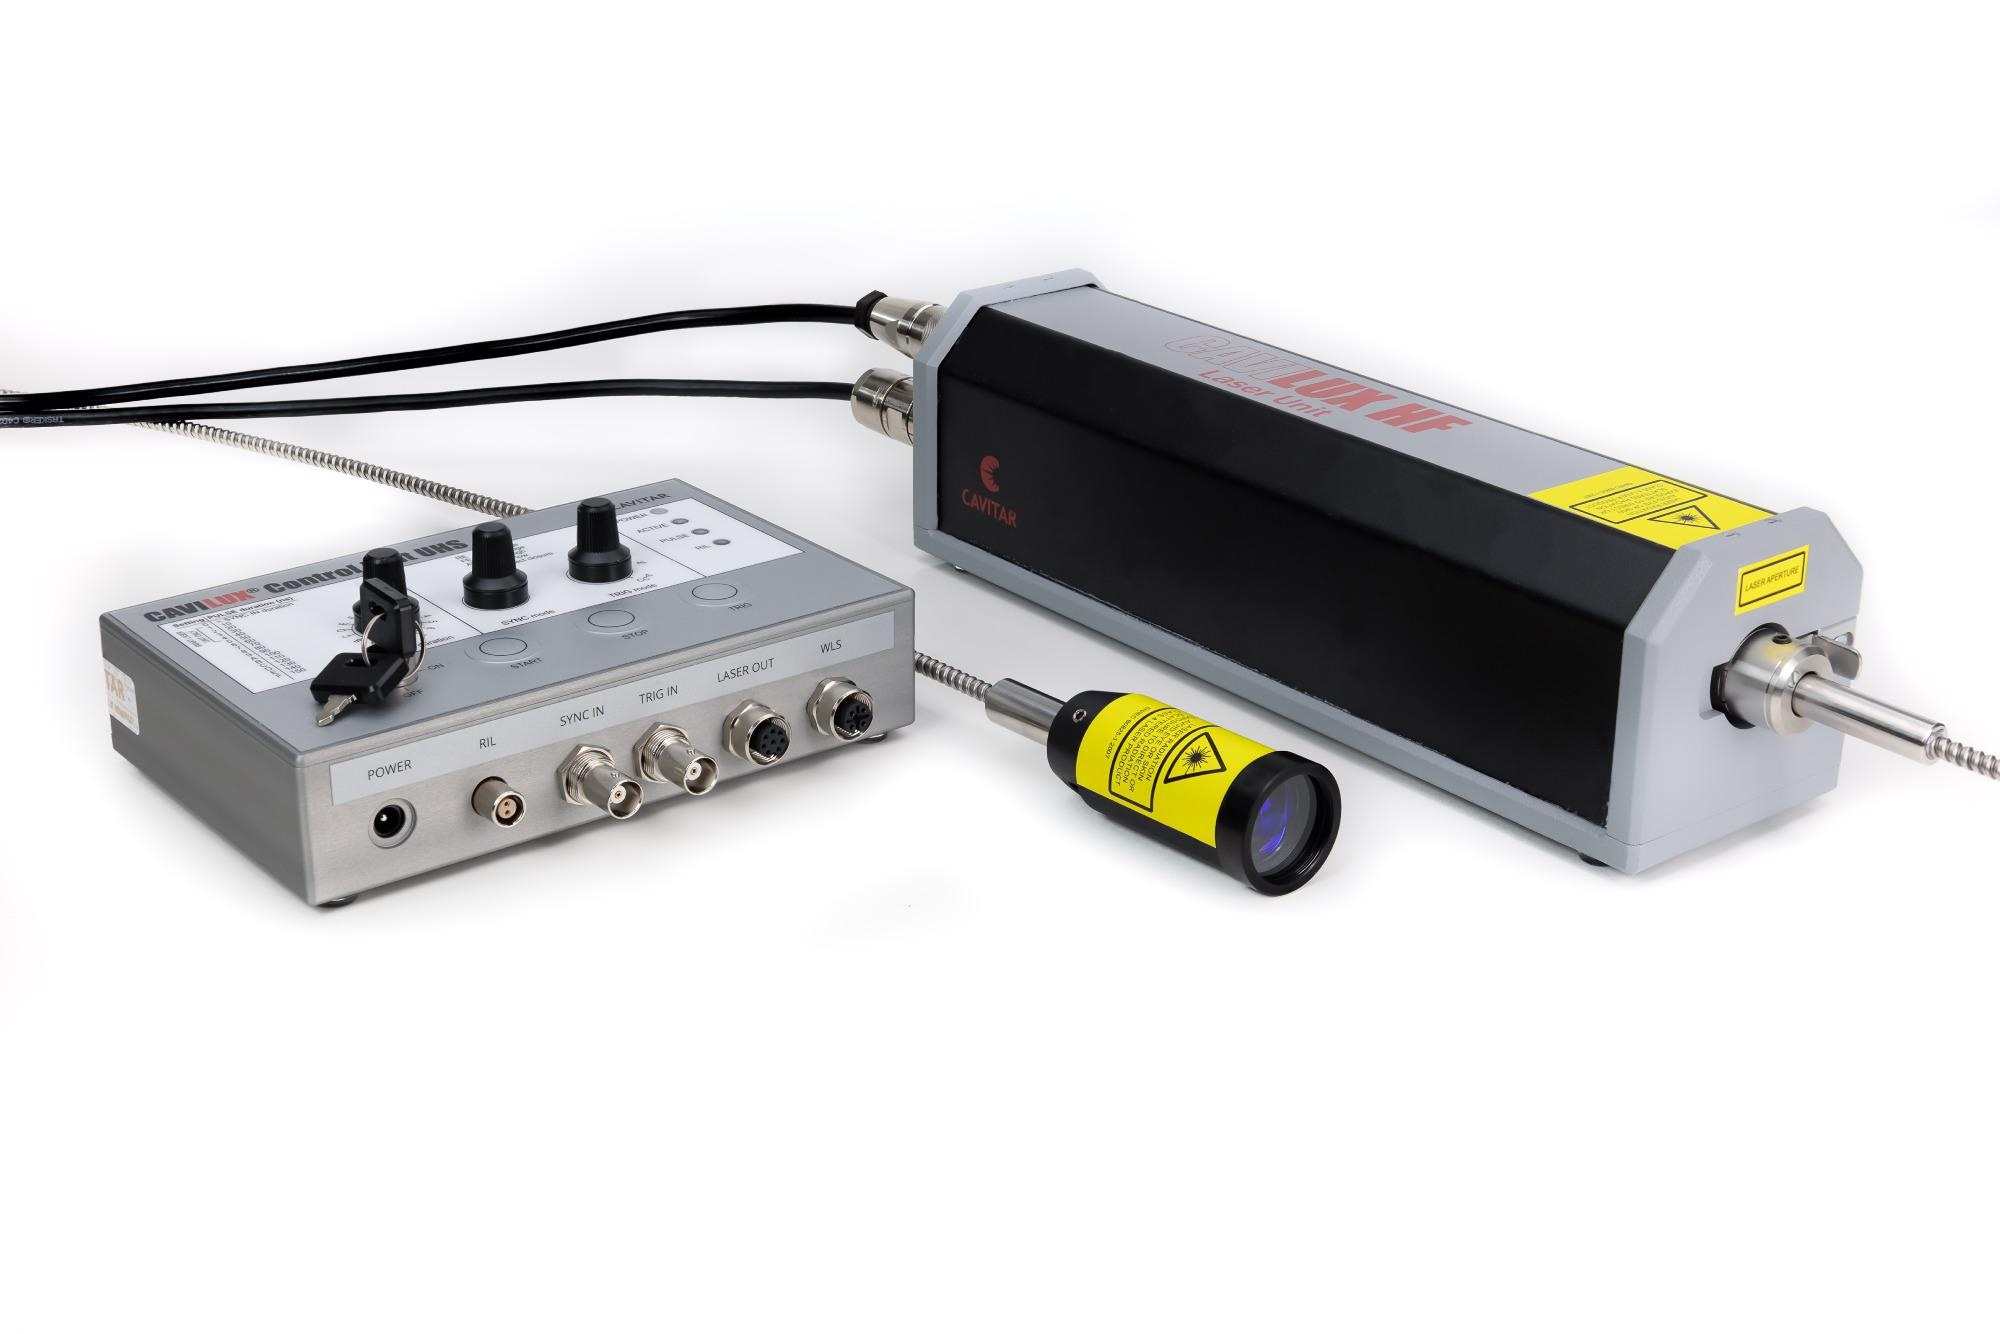 Powerful Pulsed Diode Laser Light Source with Short Pulses